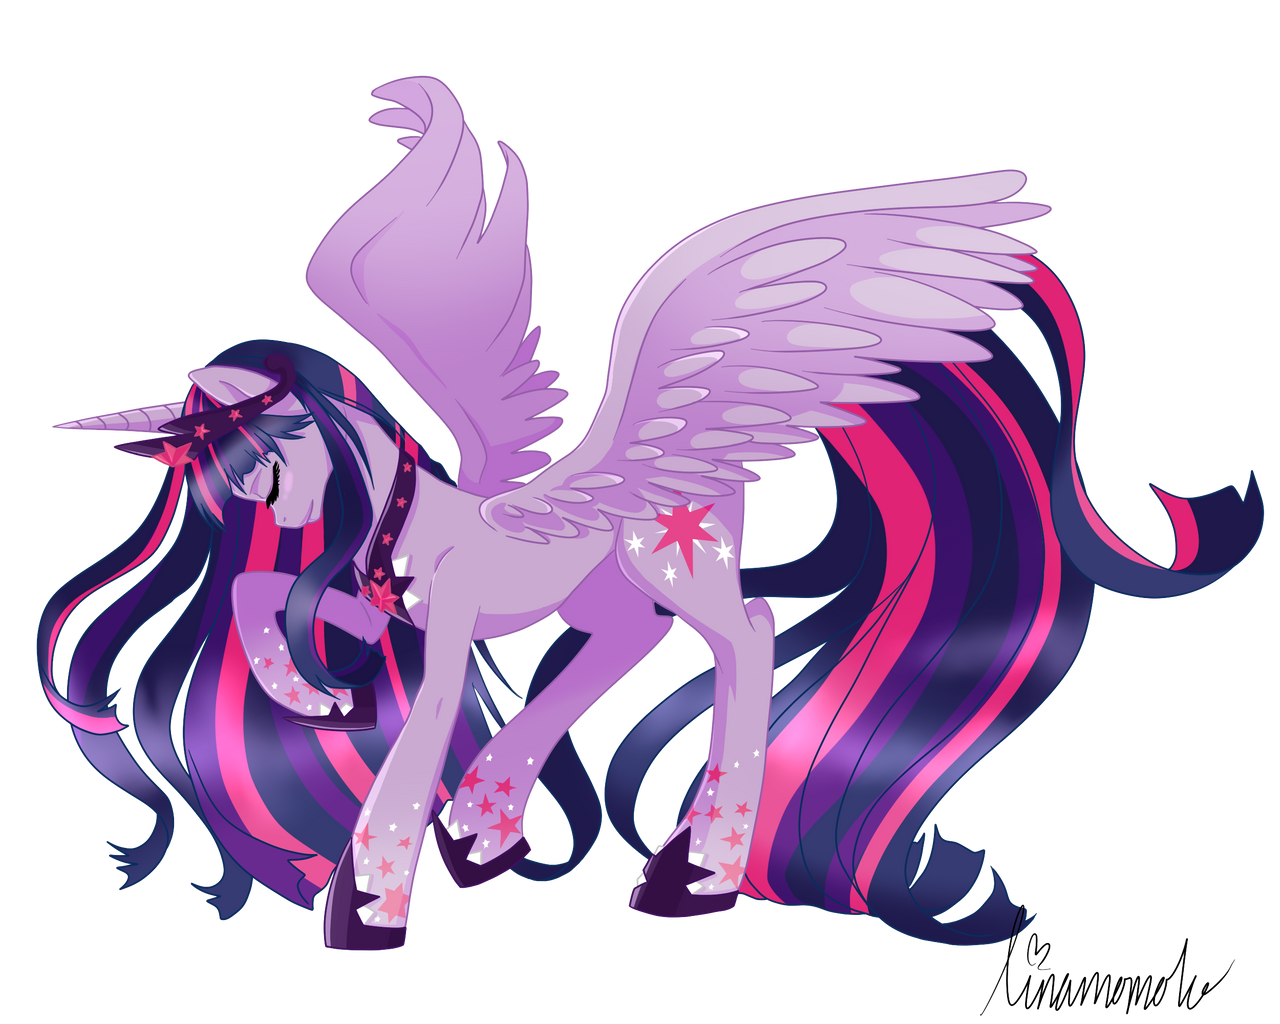 alicorn_twilight_sparkle_by_linamomoko-d7305vc.png